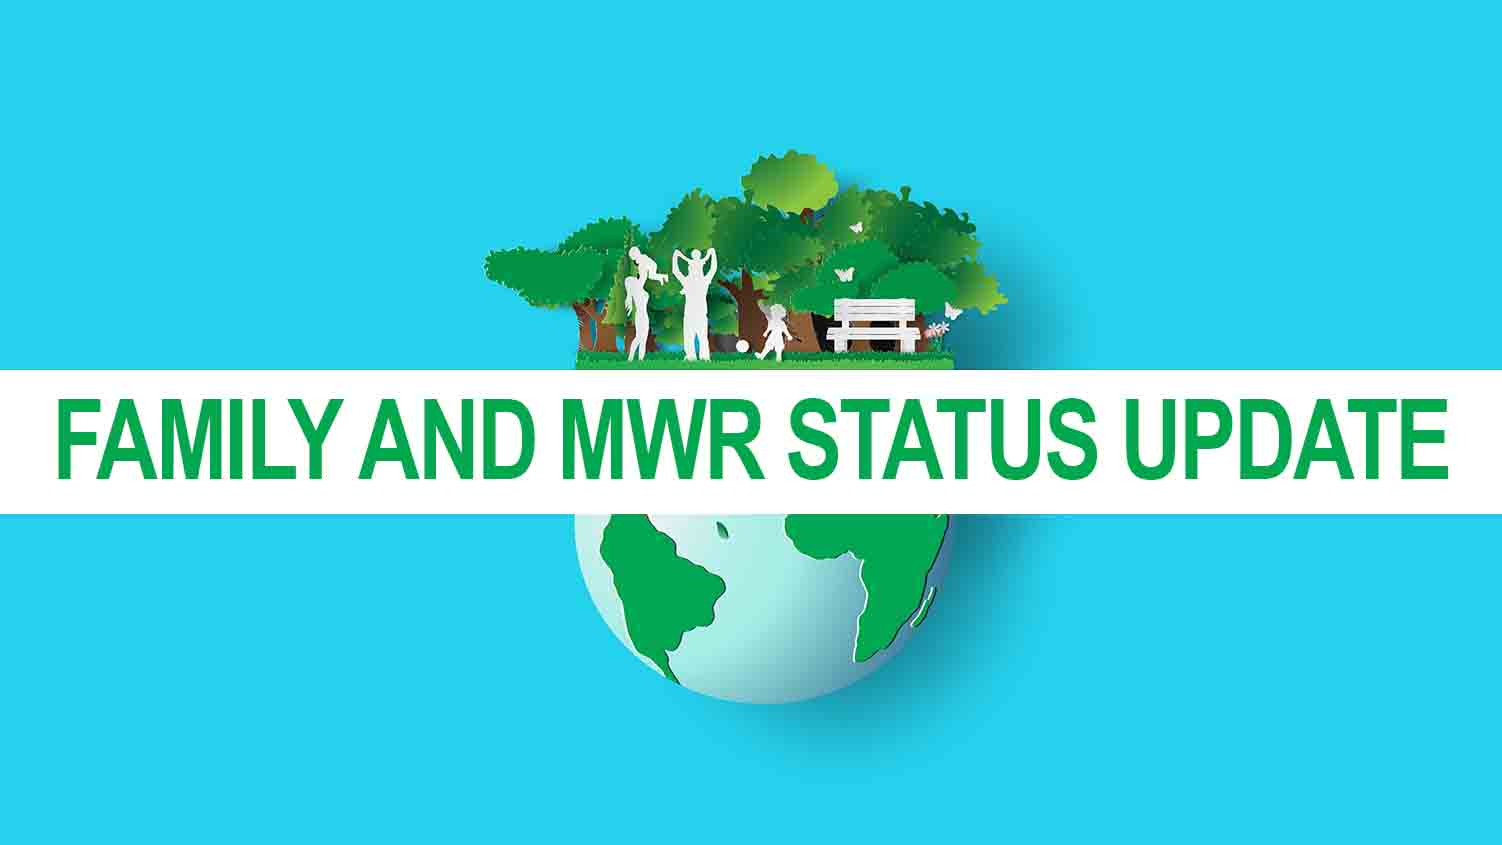 Family and MWR STATUS UPDATE